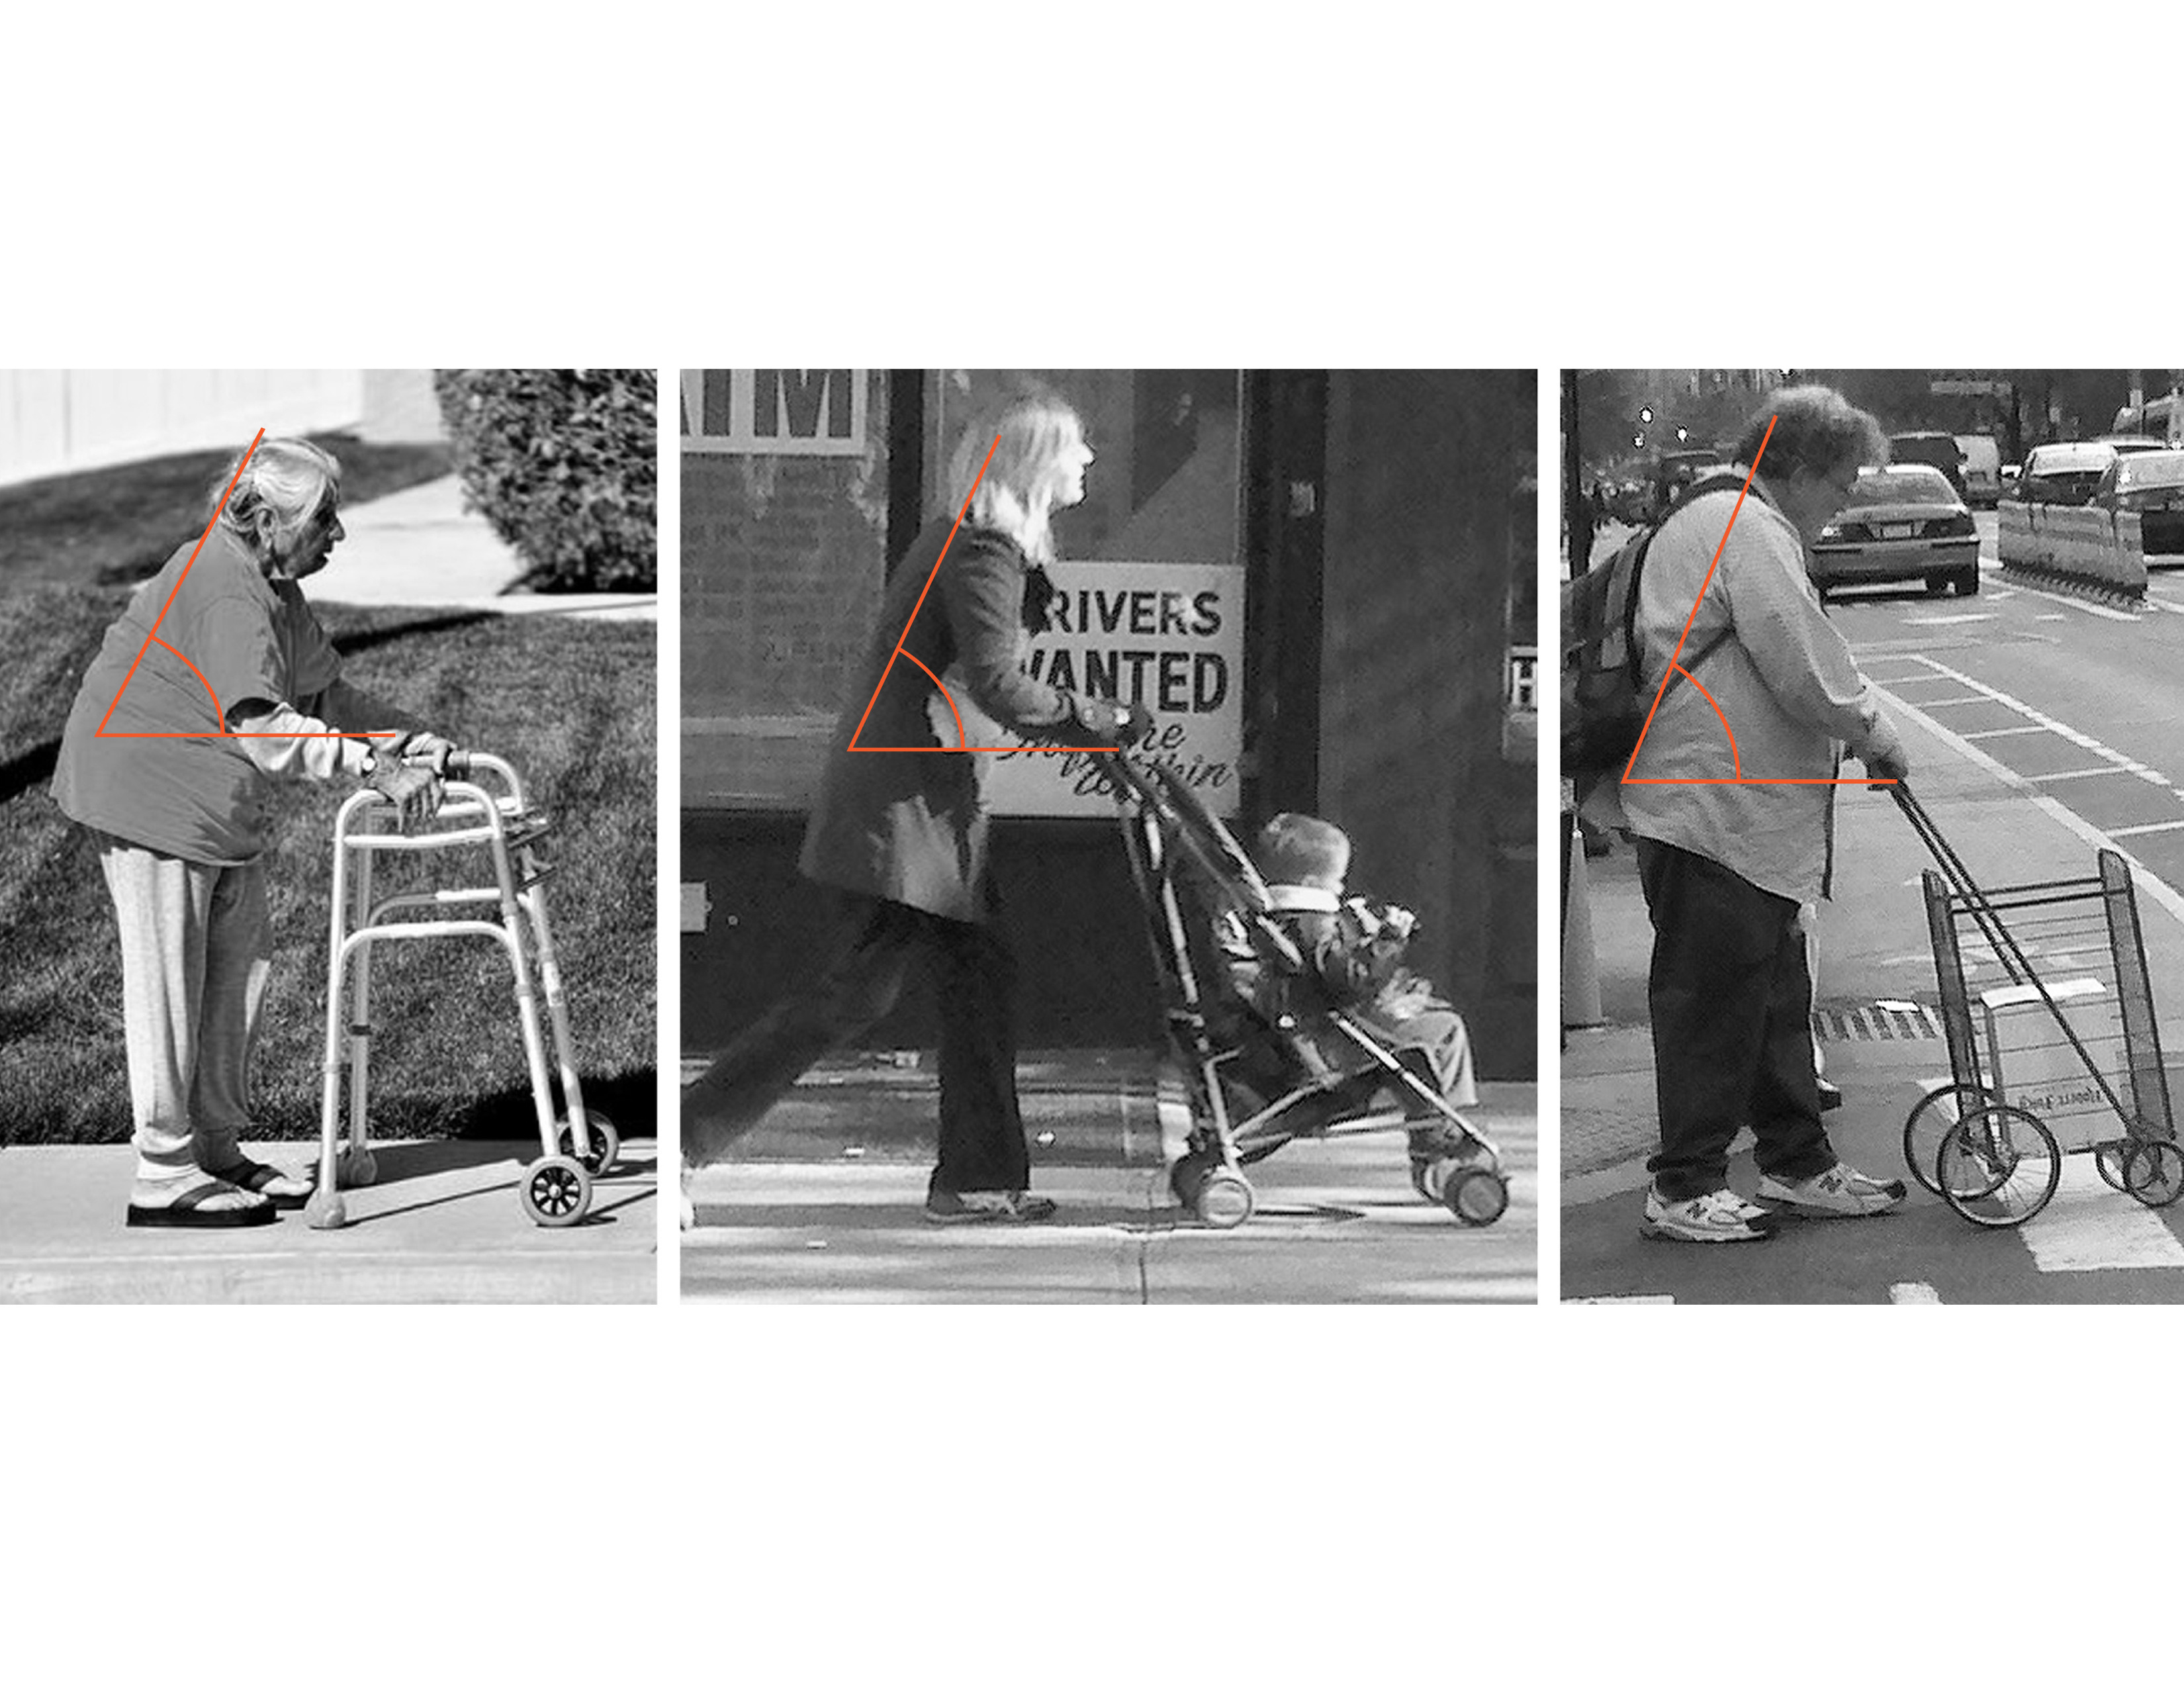 Three images show similar movements among gear-users in cities: a walker, a woman pushing a stroller, and a woman pushing a wire-frame grocery cart. All three must bend over their tools in a similar fashion.